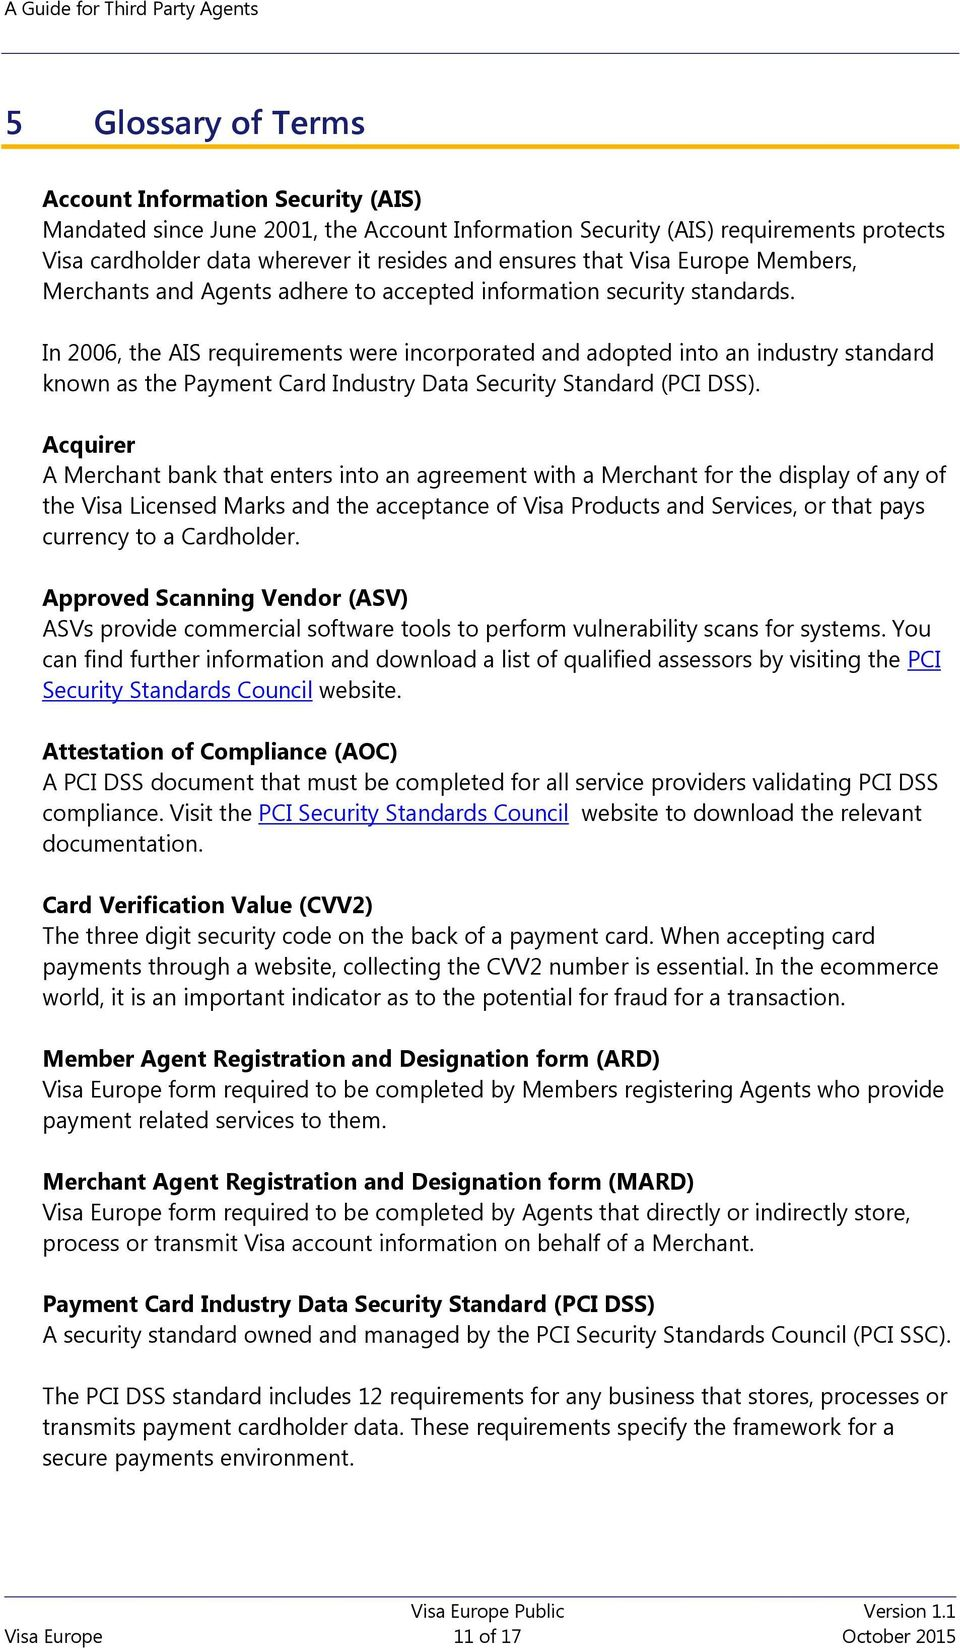 In 2006, the AIS requirements were incorporated and adopted into an industry standard known as the Payment Card Industry Data Security Standard (PCI DSS).